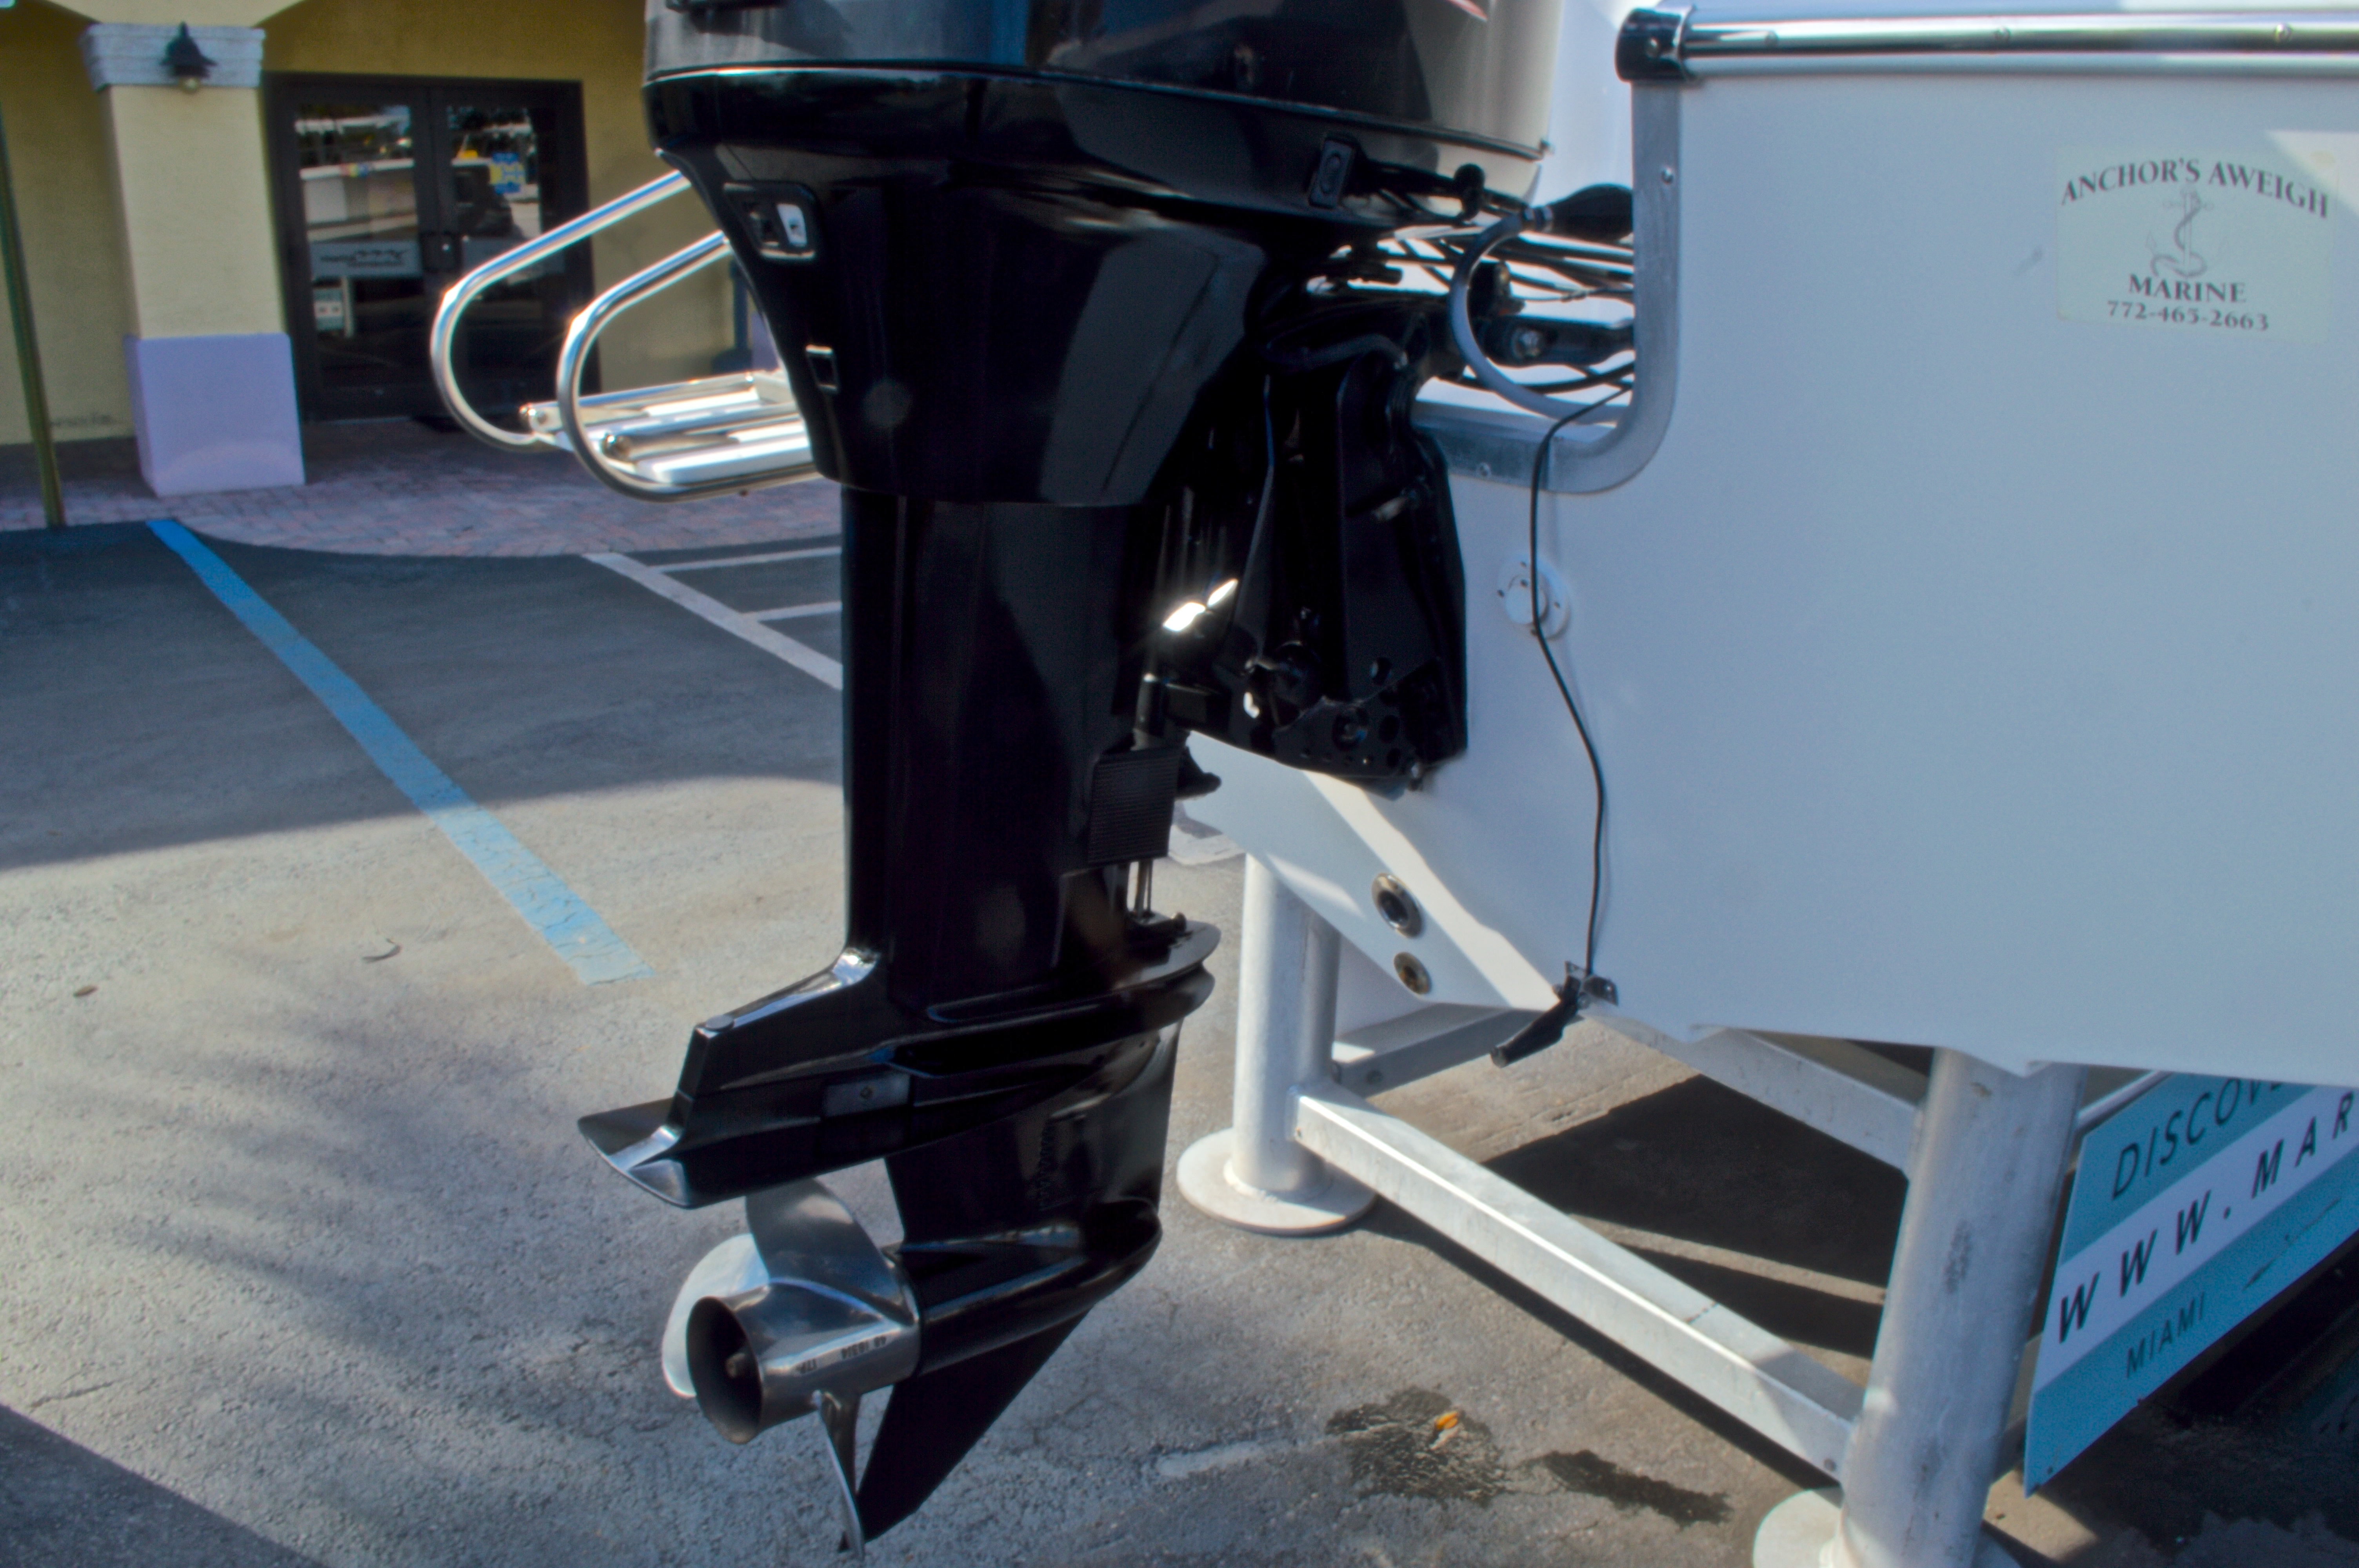 Thumbnail 8 for Used 2007 Sea Pro 186 Center Console boat for sale in West Palm Beach, FL